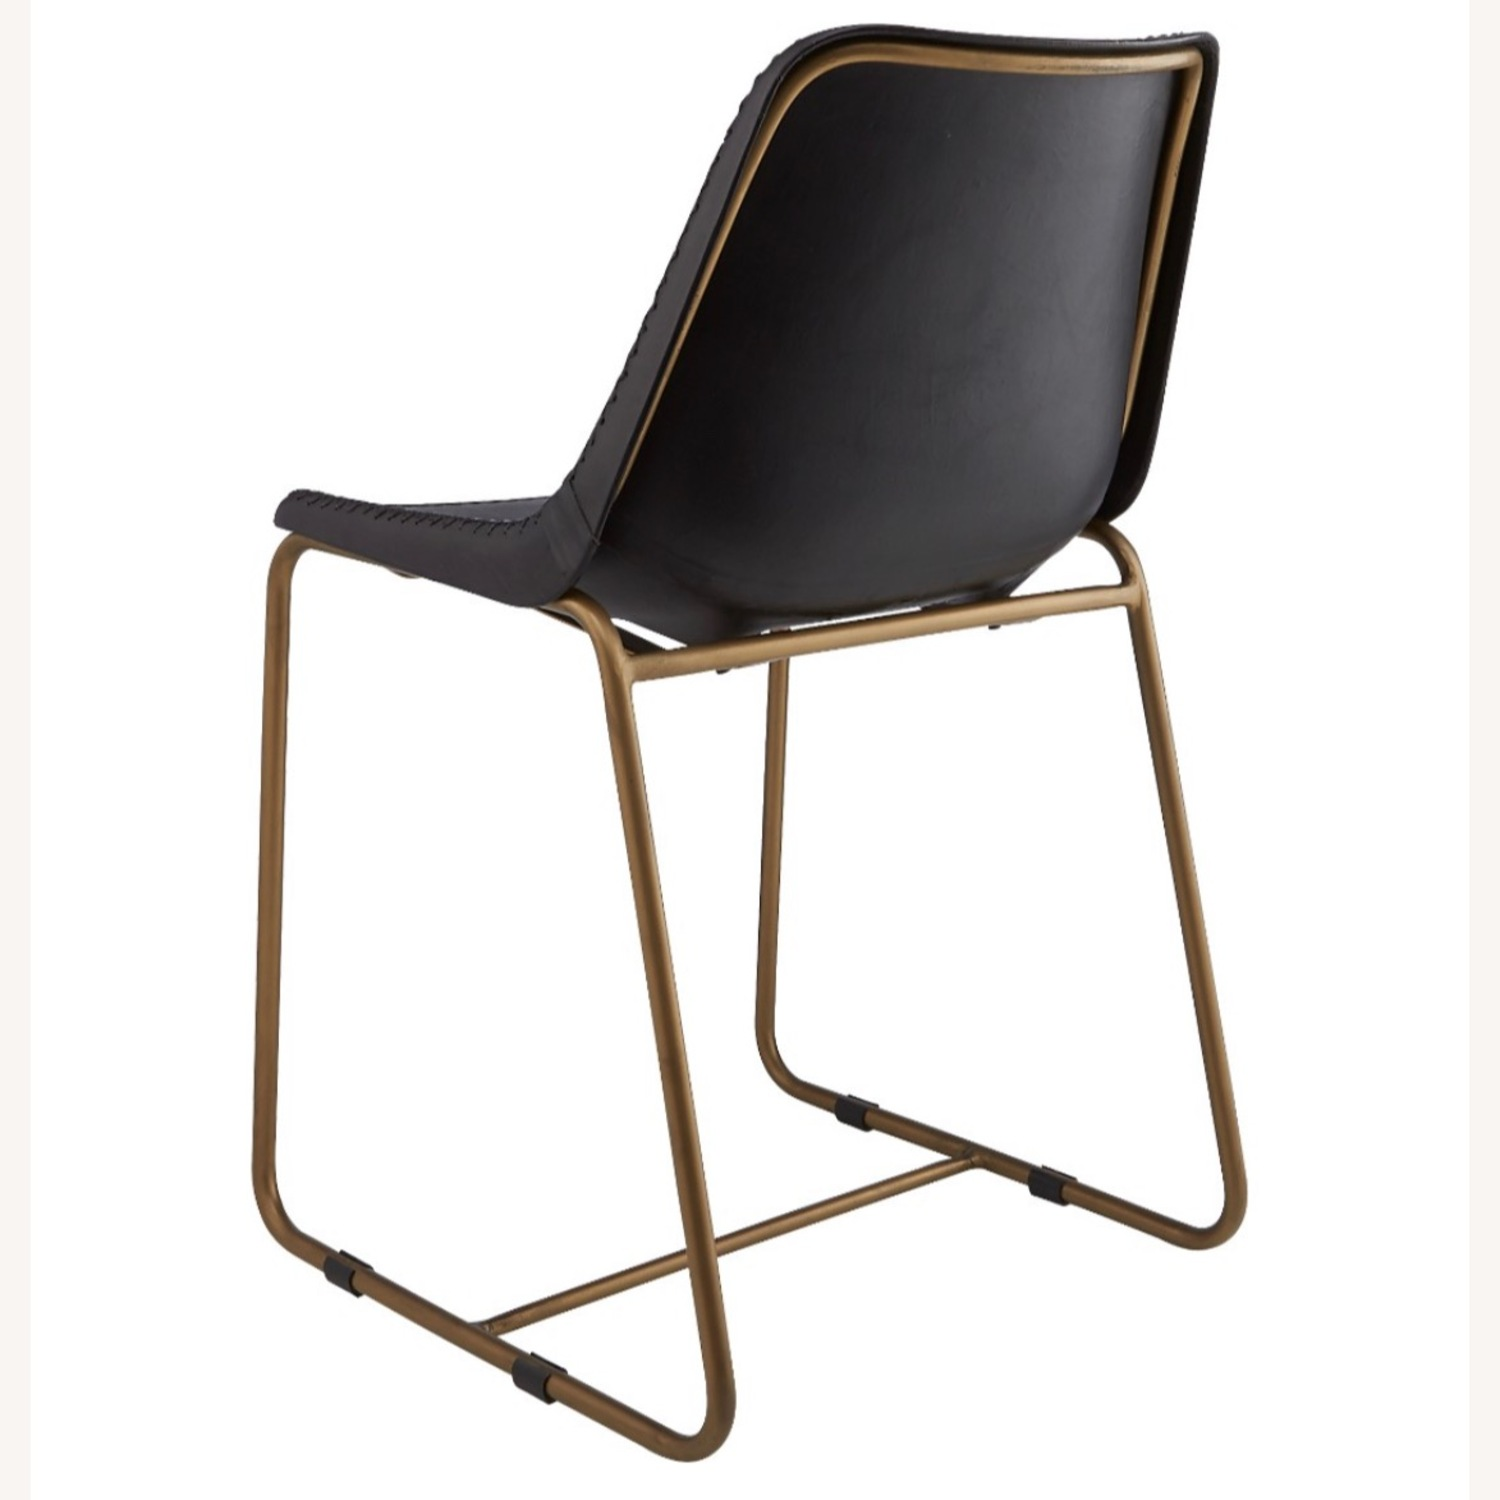 CB2 Roadhouse Black Leather Dining Chairs - image-4